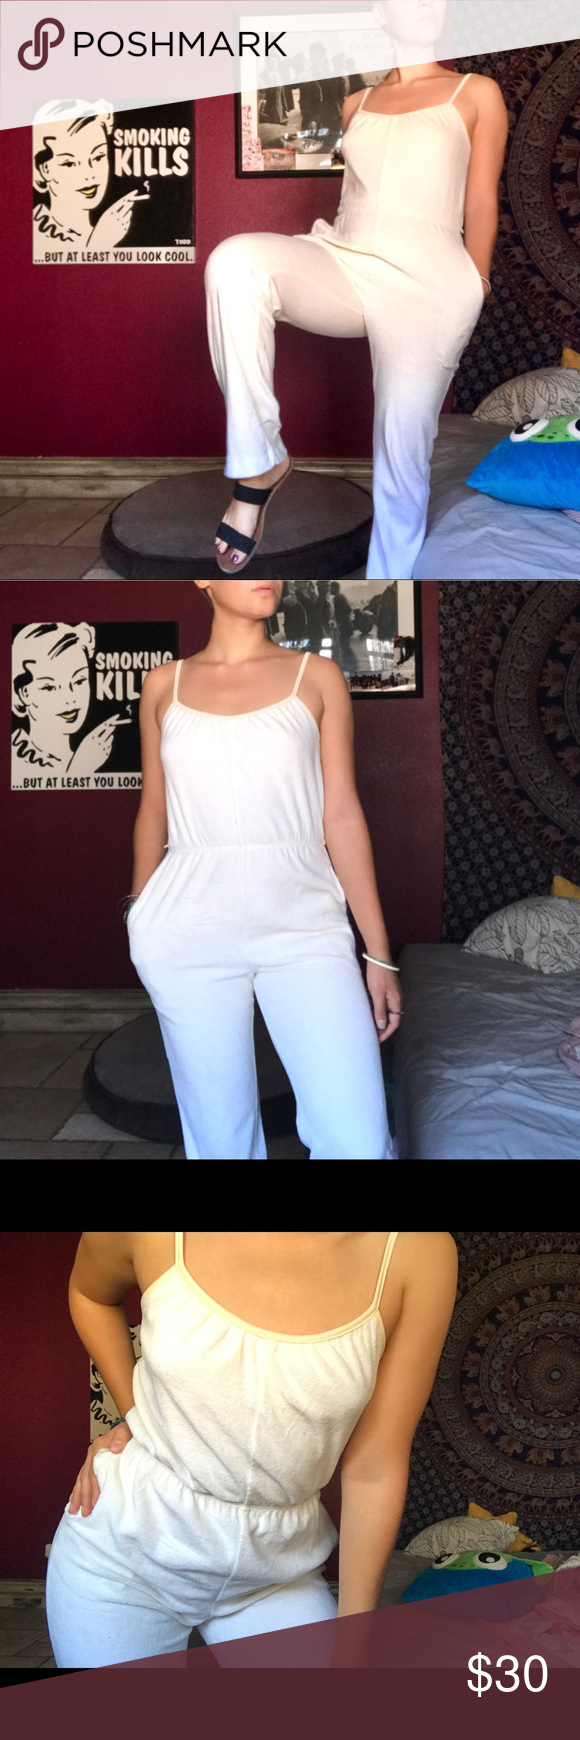 3e88c24c813c 90 s vintage saks fifth avenue velvet jumpsuit 90 s Saks fifth avenue  vintage white velvet jumpsuit So soft and comfortable this jumpsuit is  everything.